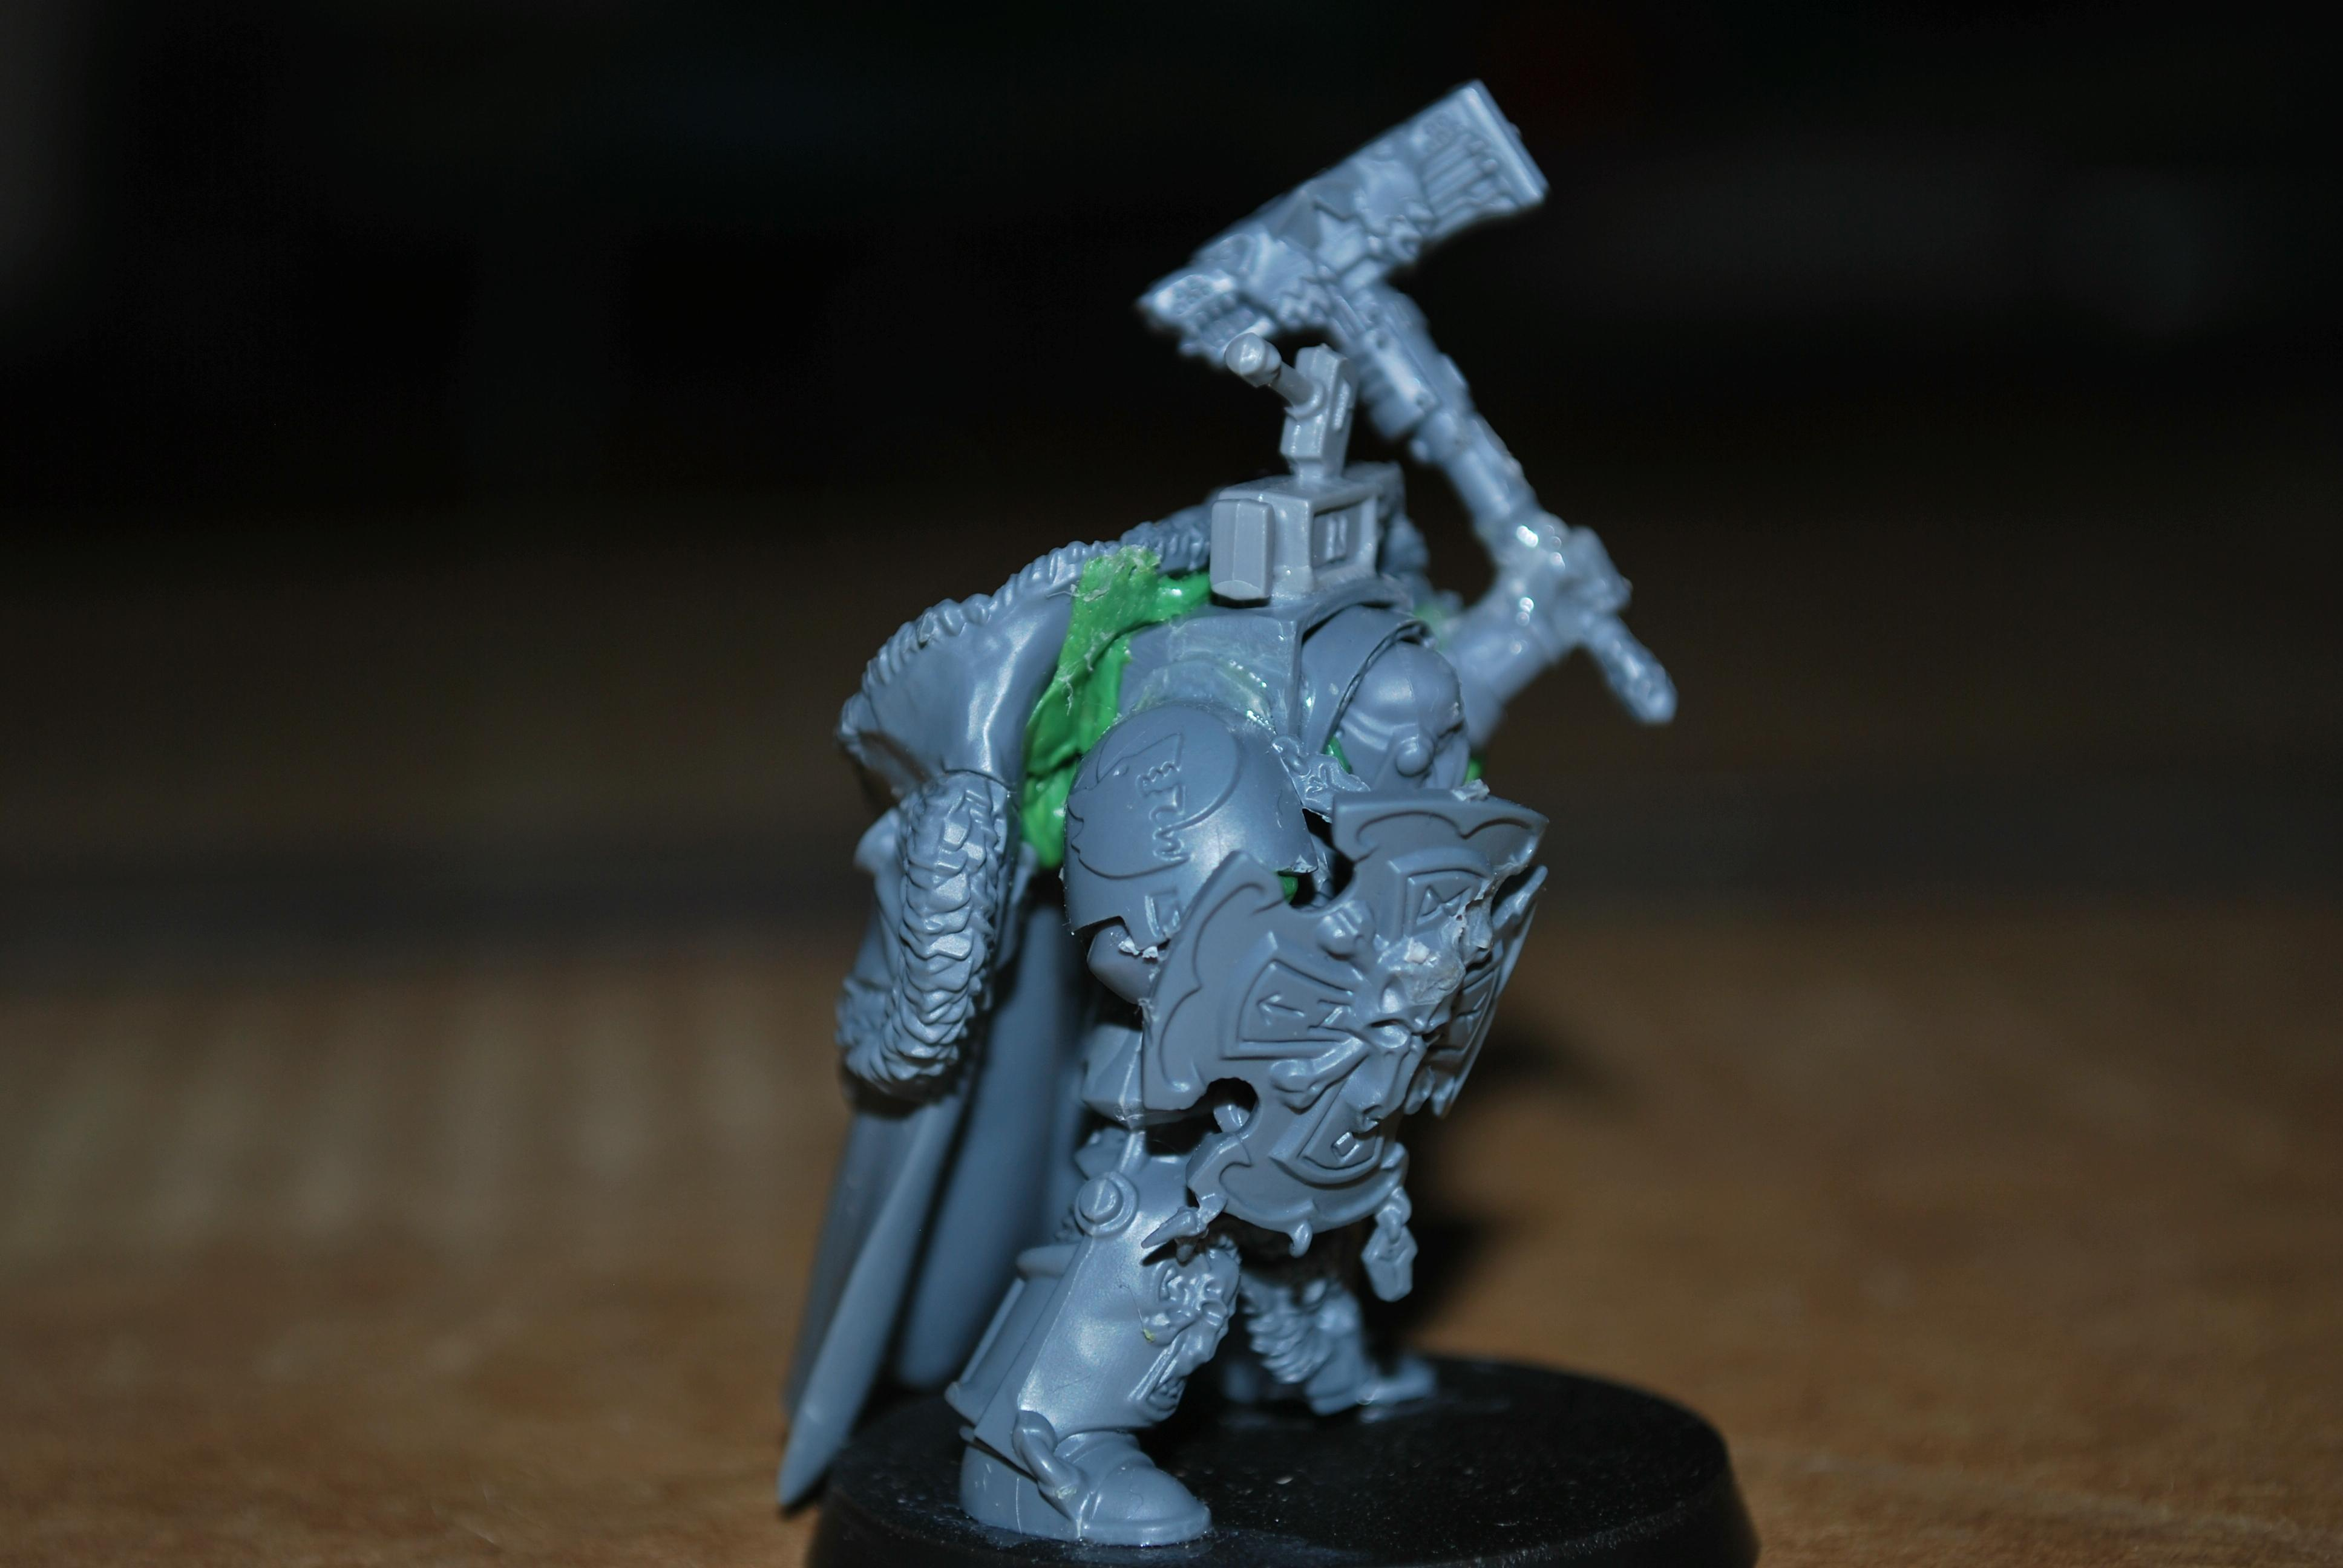 Converion, Imperial, Space Wolves, Spasce Marines, Terminator Armor, Warhammer 40,000